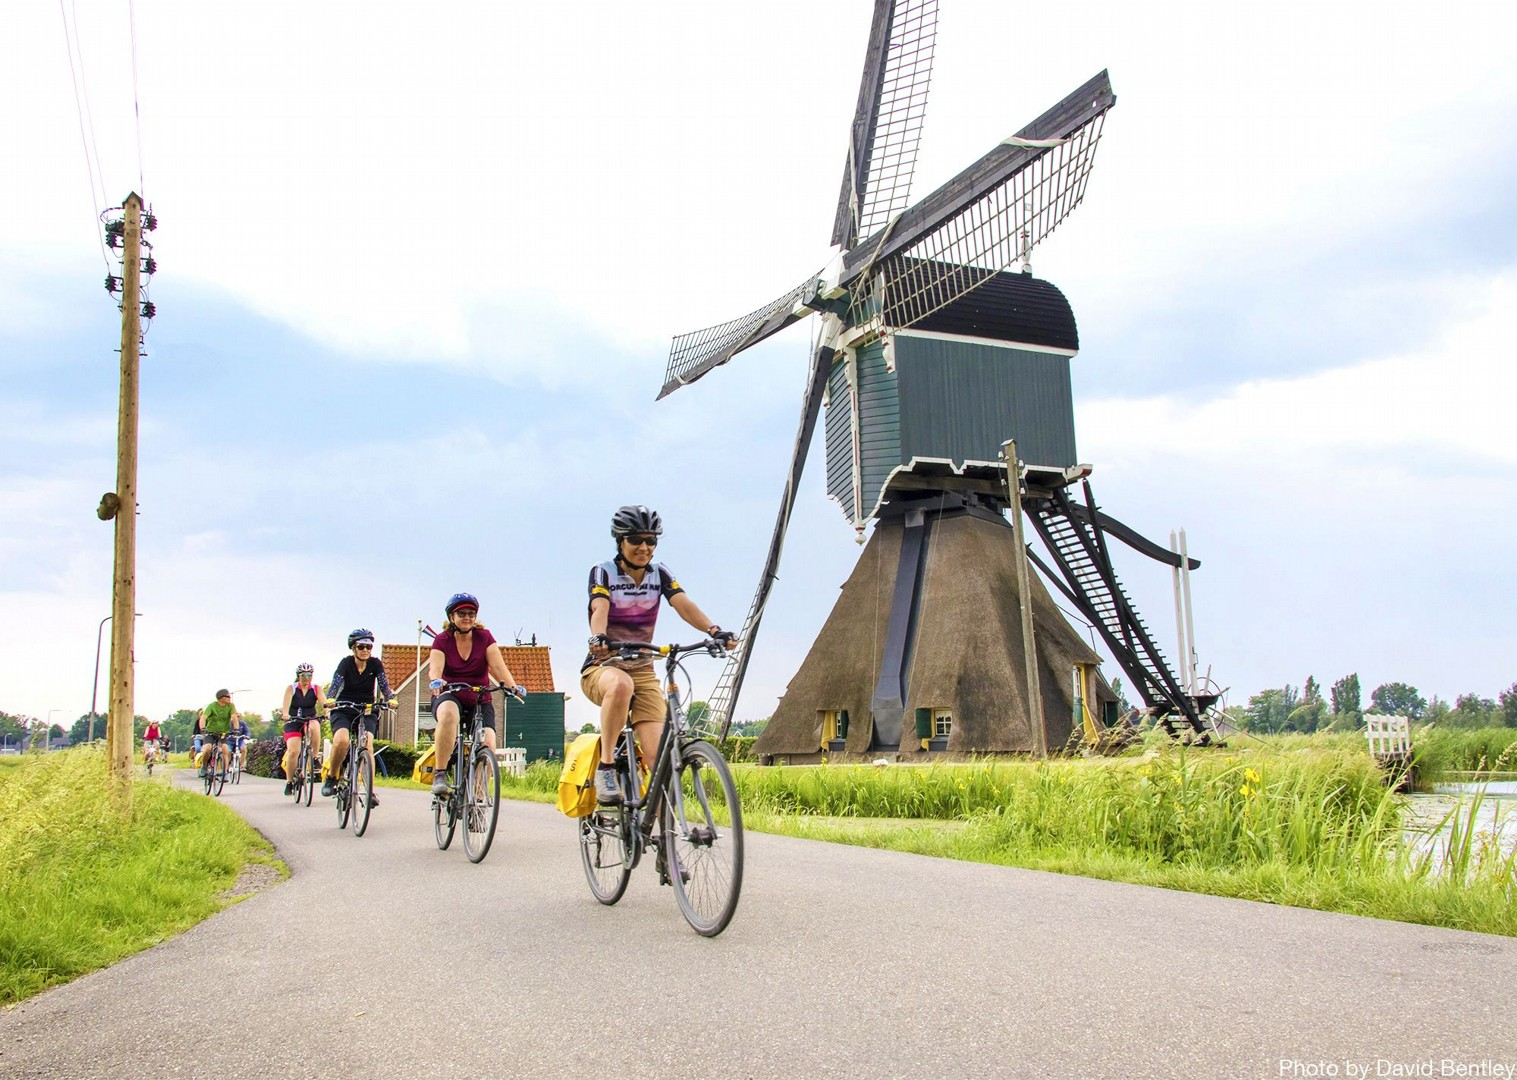 2018 Holland Bike and Barge_0118.jpg - Holland - Windmills and Golden Beaches - Bike and Barge Holiday - Leisure Cycling